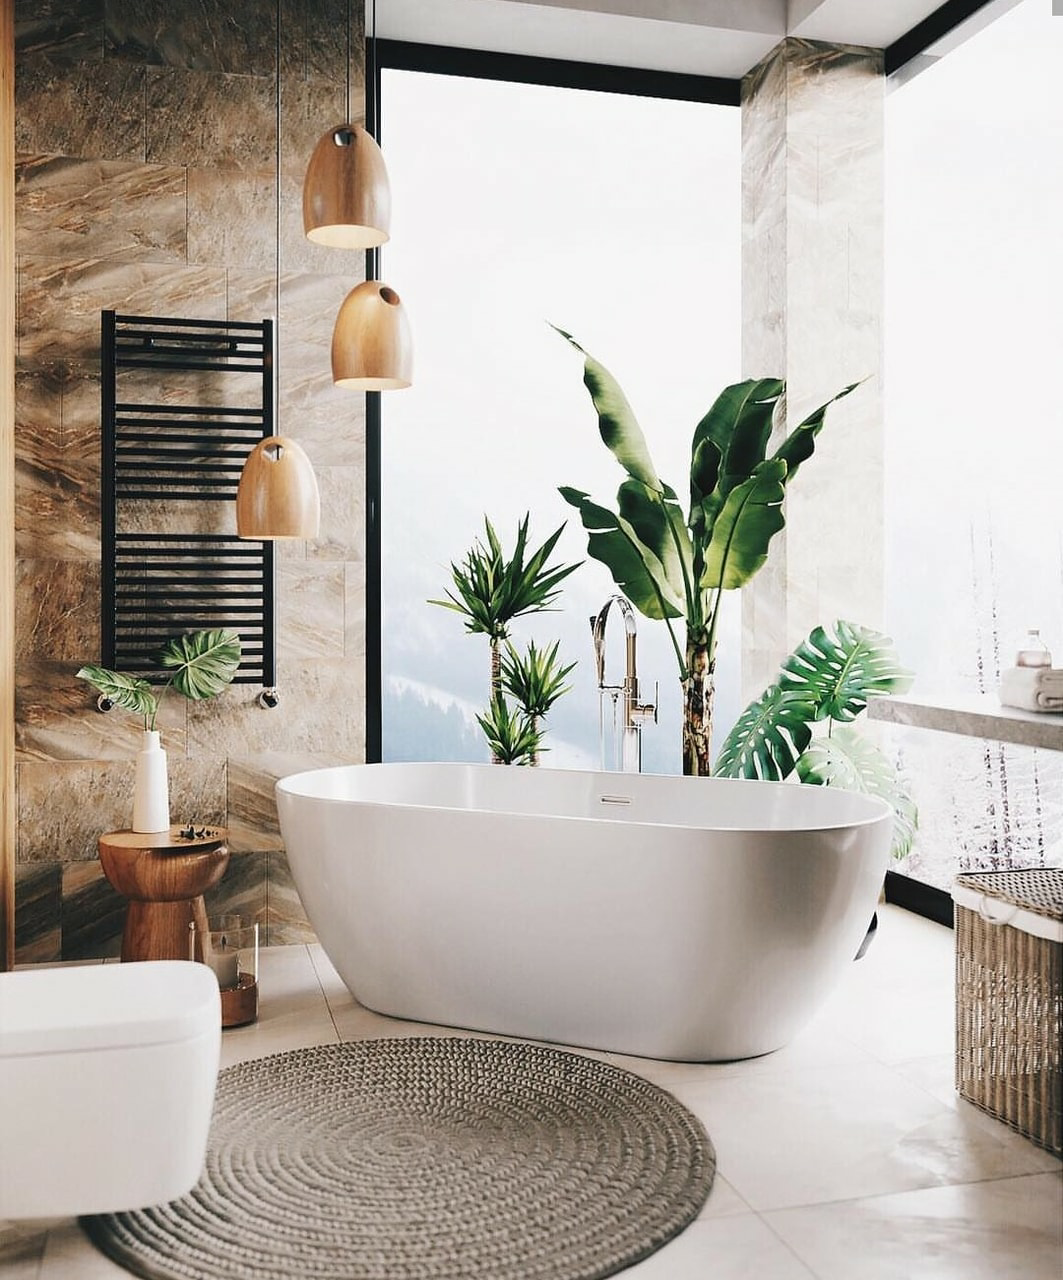 bathroom accessories, home decor, home design and bathing suit